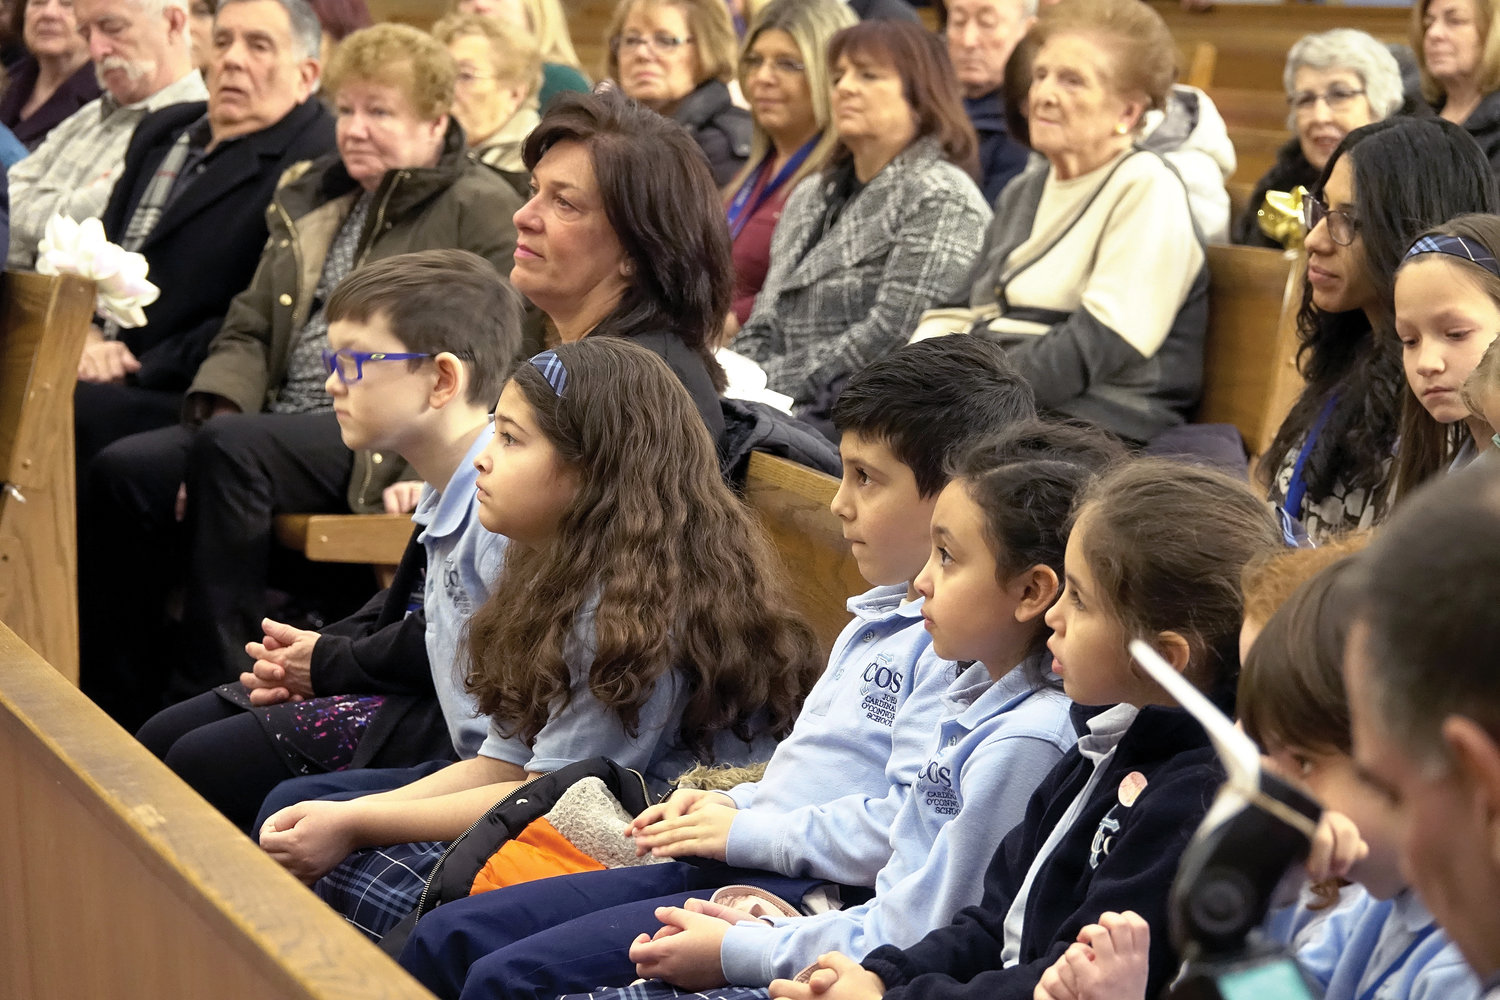 Students, other members of the school and guests attend Mass Cardinal Dolan offered at Immaculate Conception Church before he toured the school and attended a reception there.